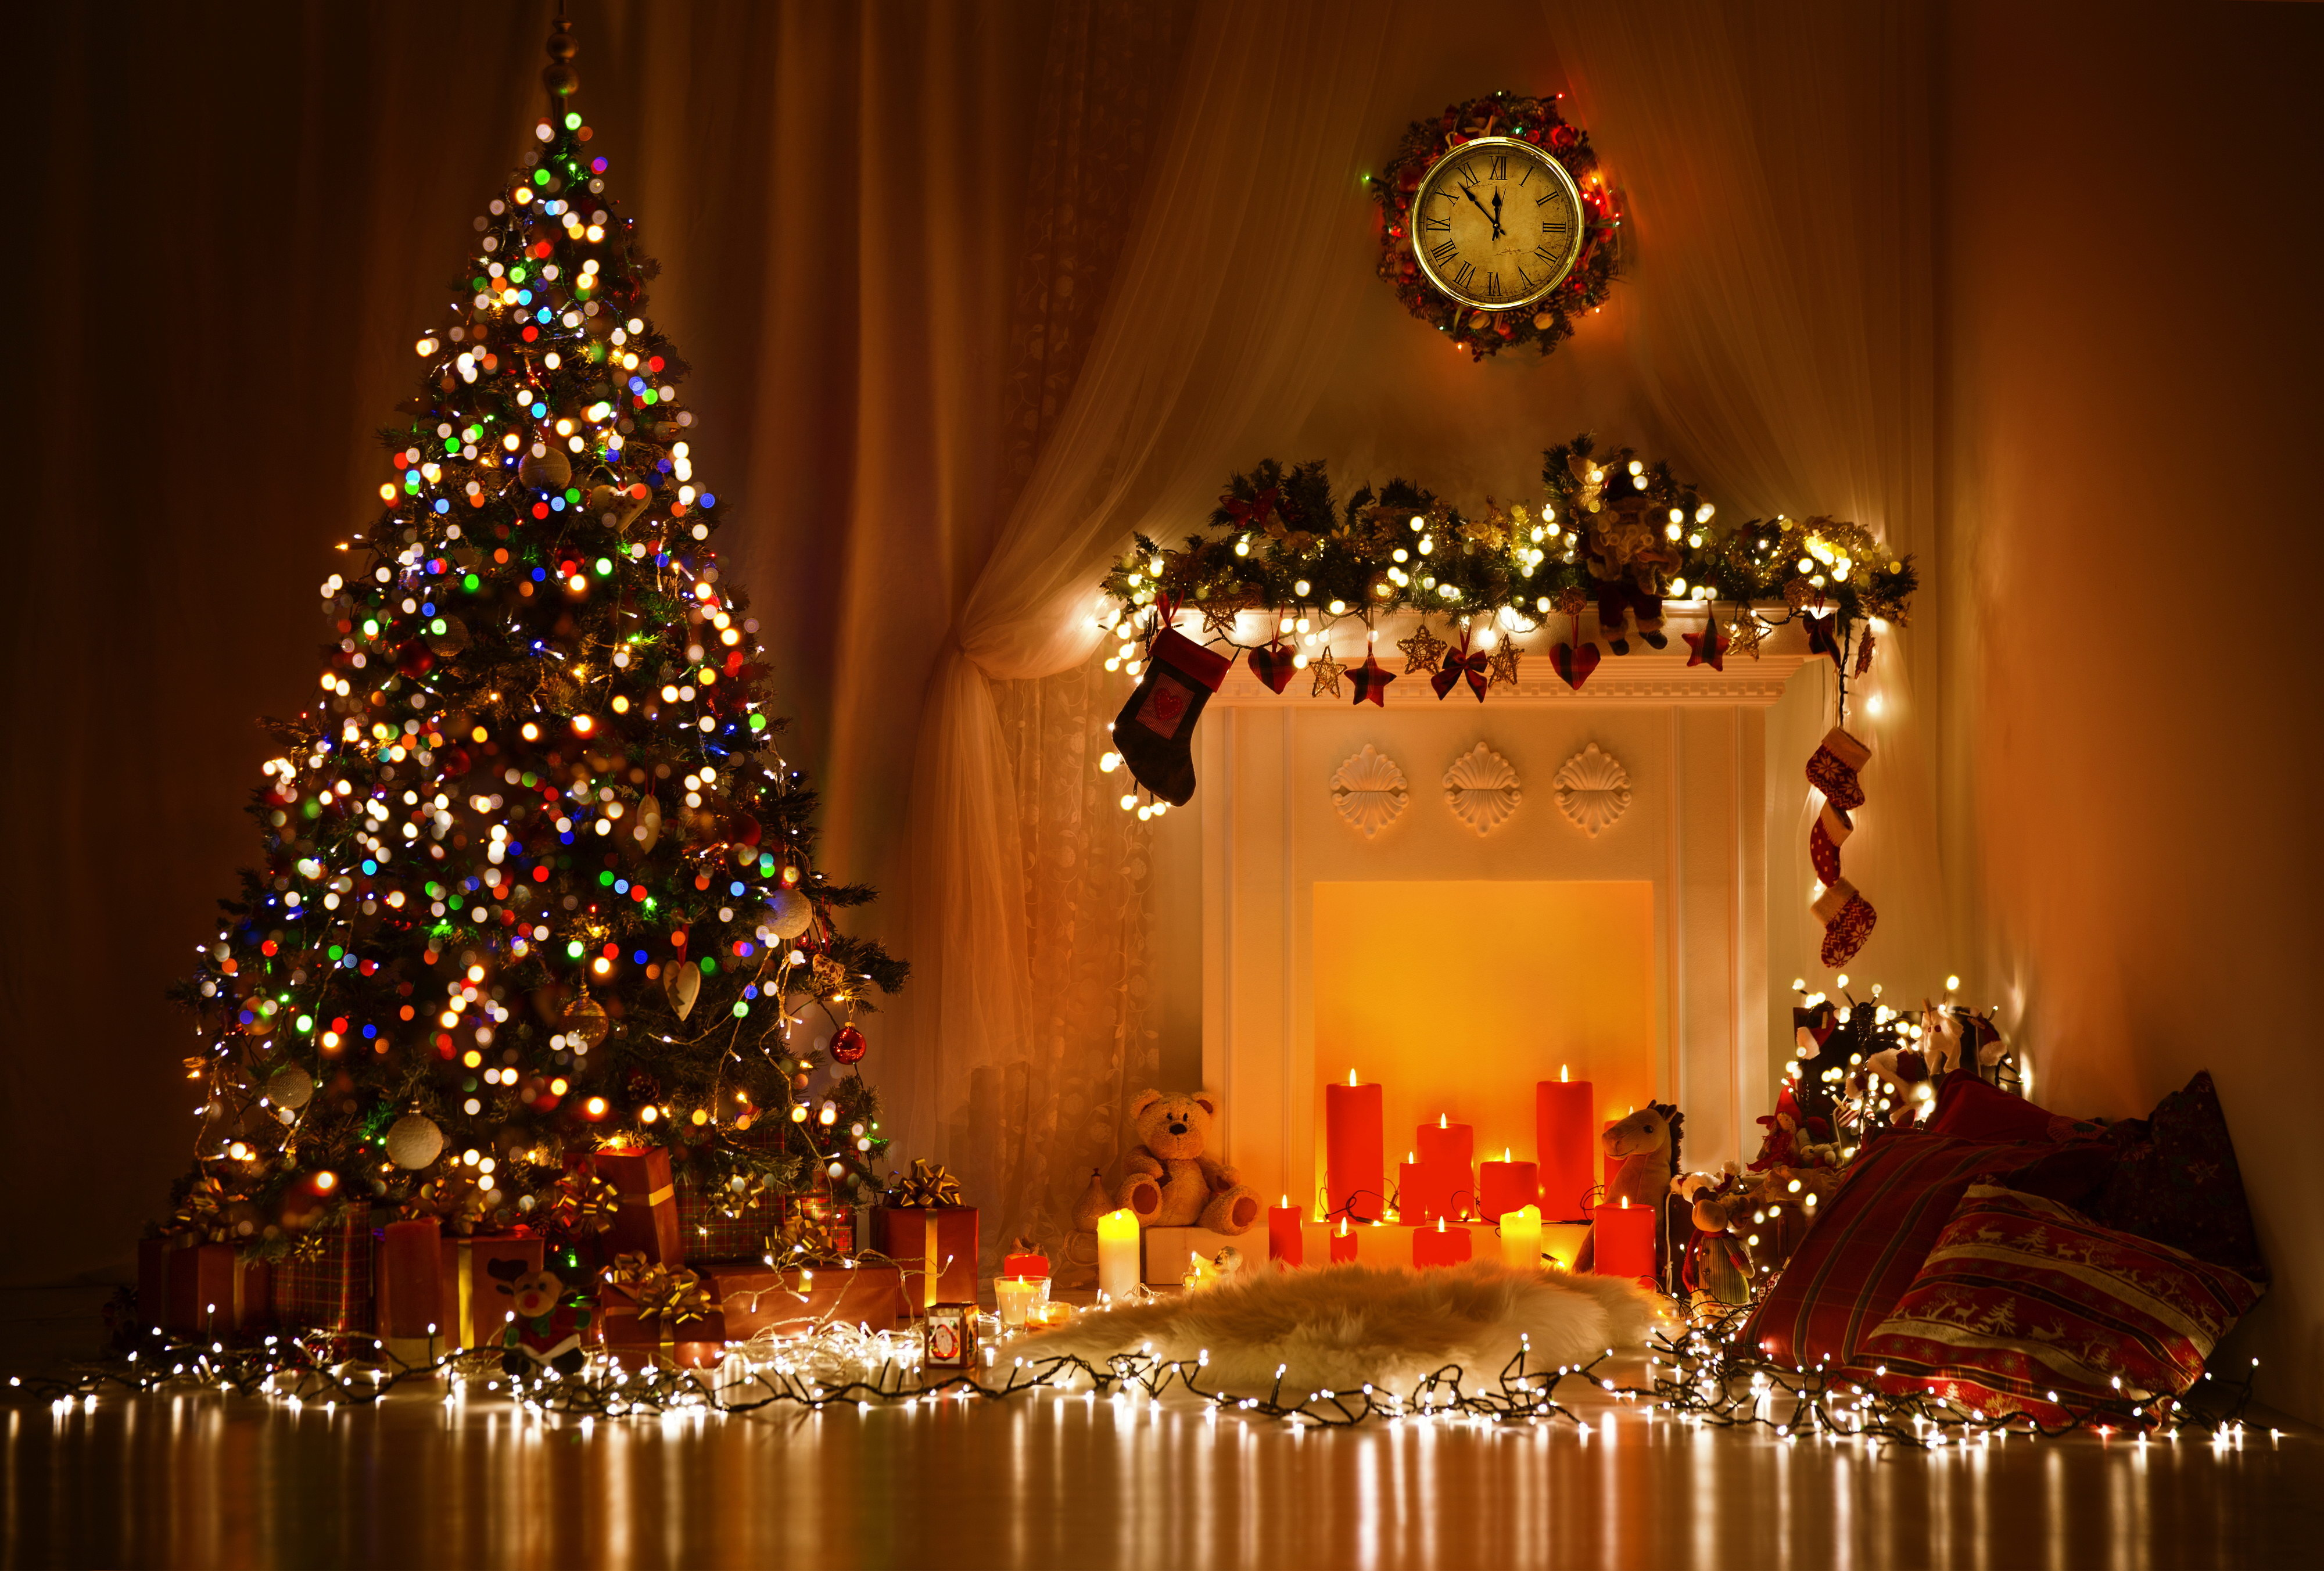 Wallpaper new year christmas christmas tree fireplace candle 4000x2704